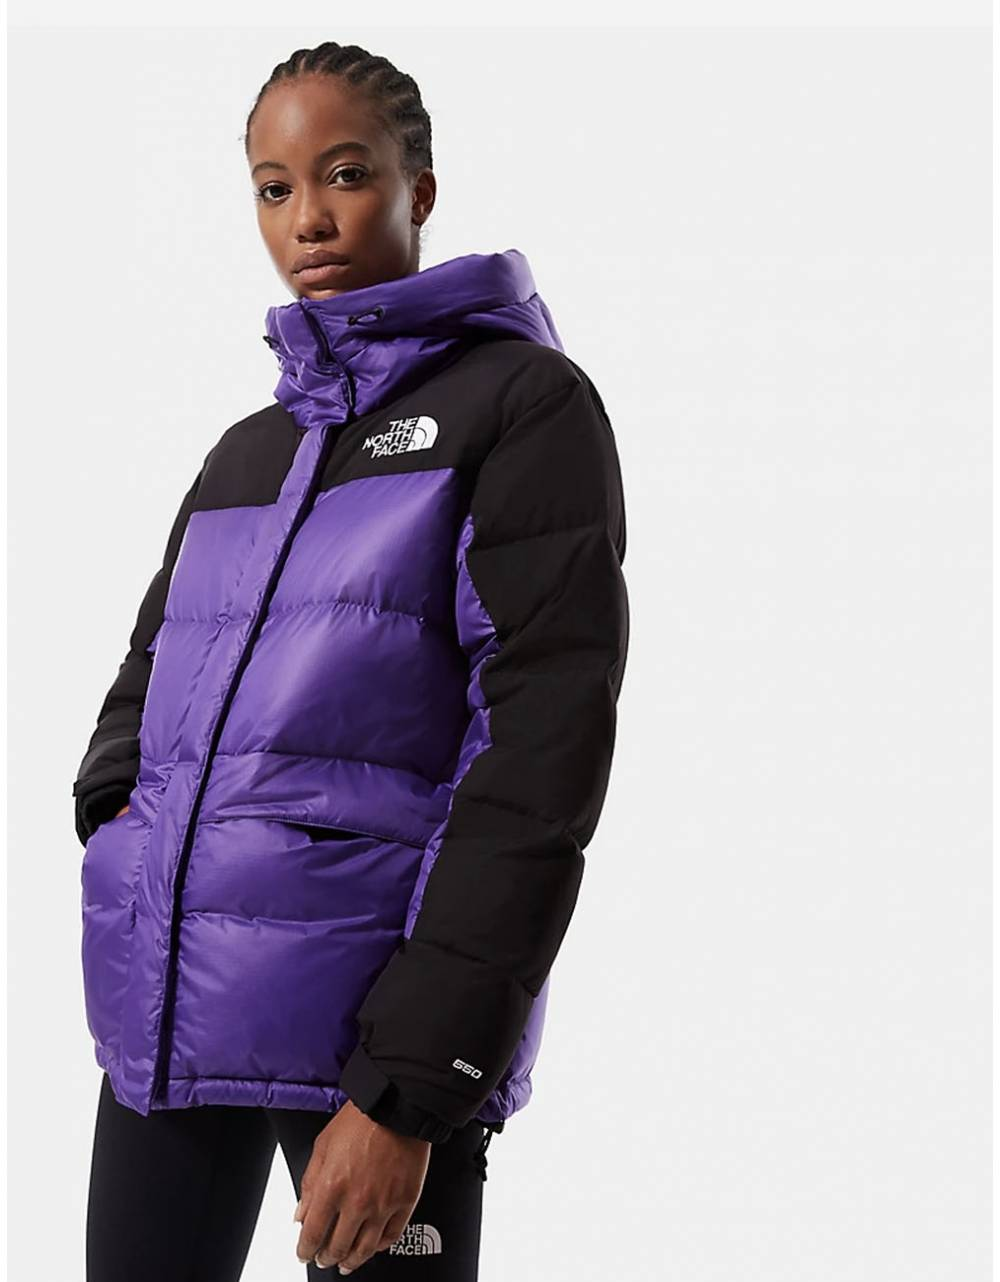 The North Face Woman's Himalayan down parka jacket - peak purple THE NORTH FACE Bomber 311,48€